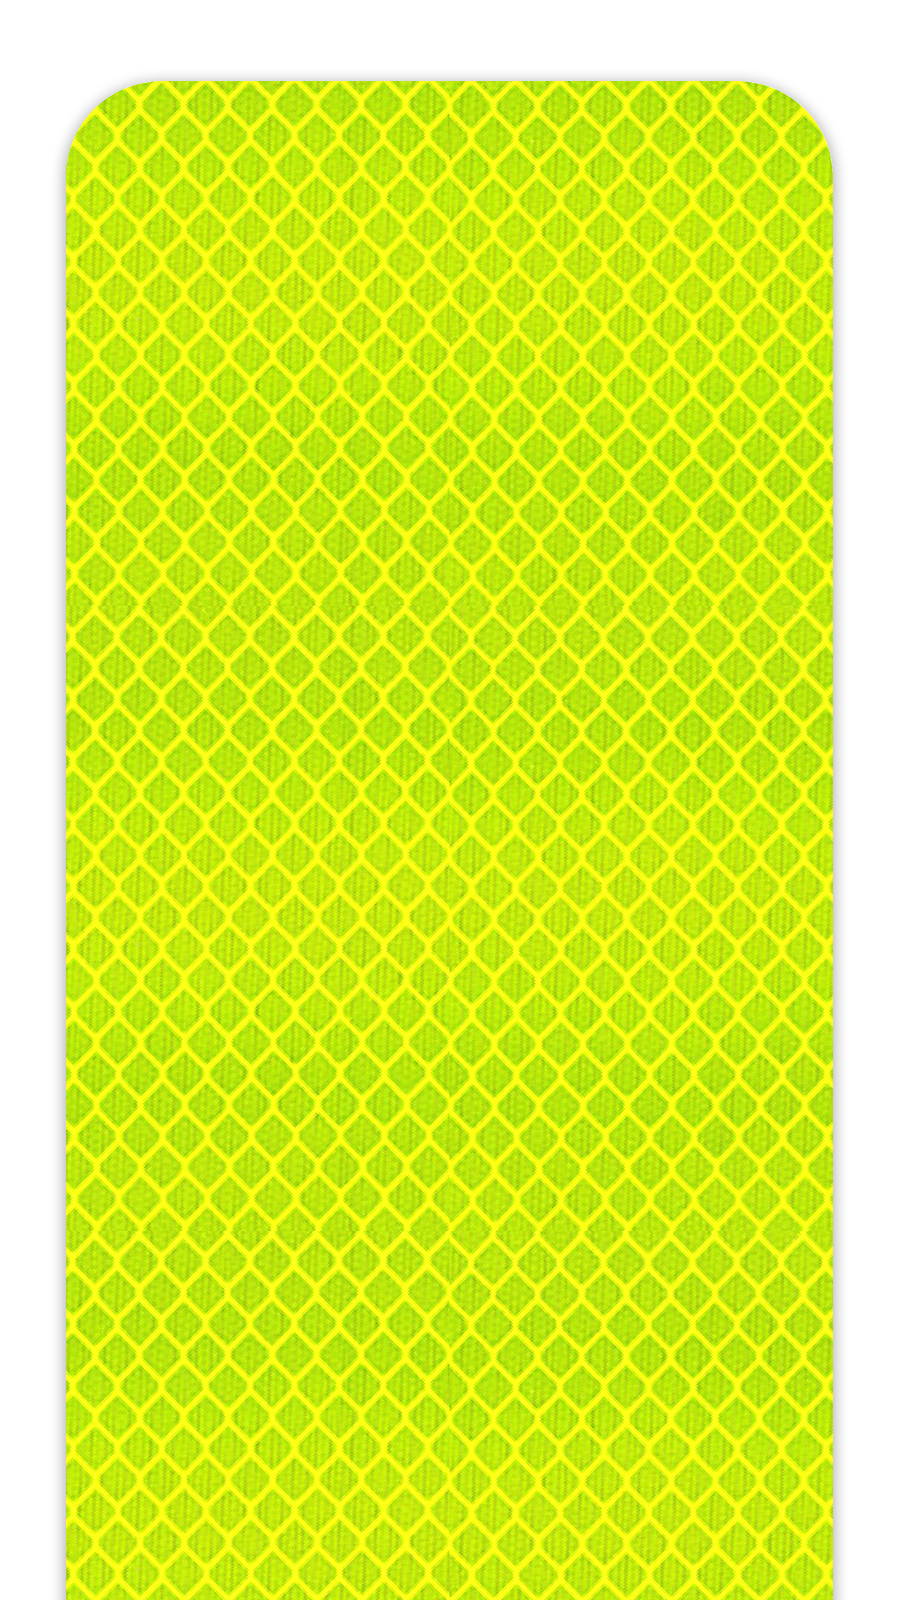 3M™ 3983 Series Fluorescent Yellow Green Diamond Grade Prismatic Sheeting